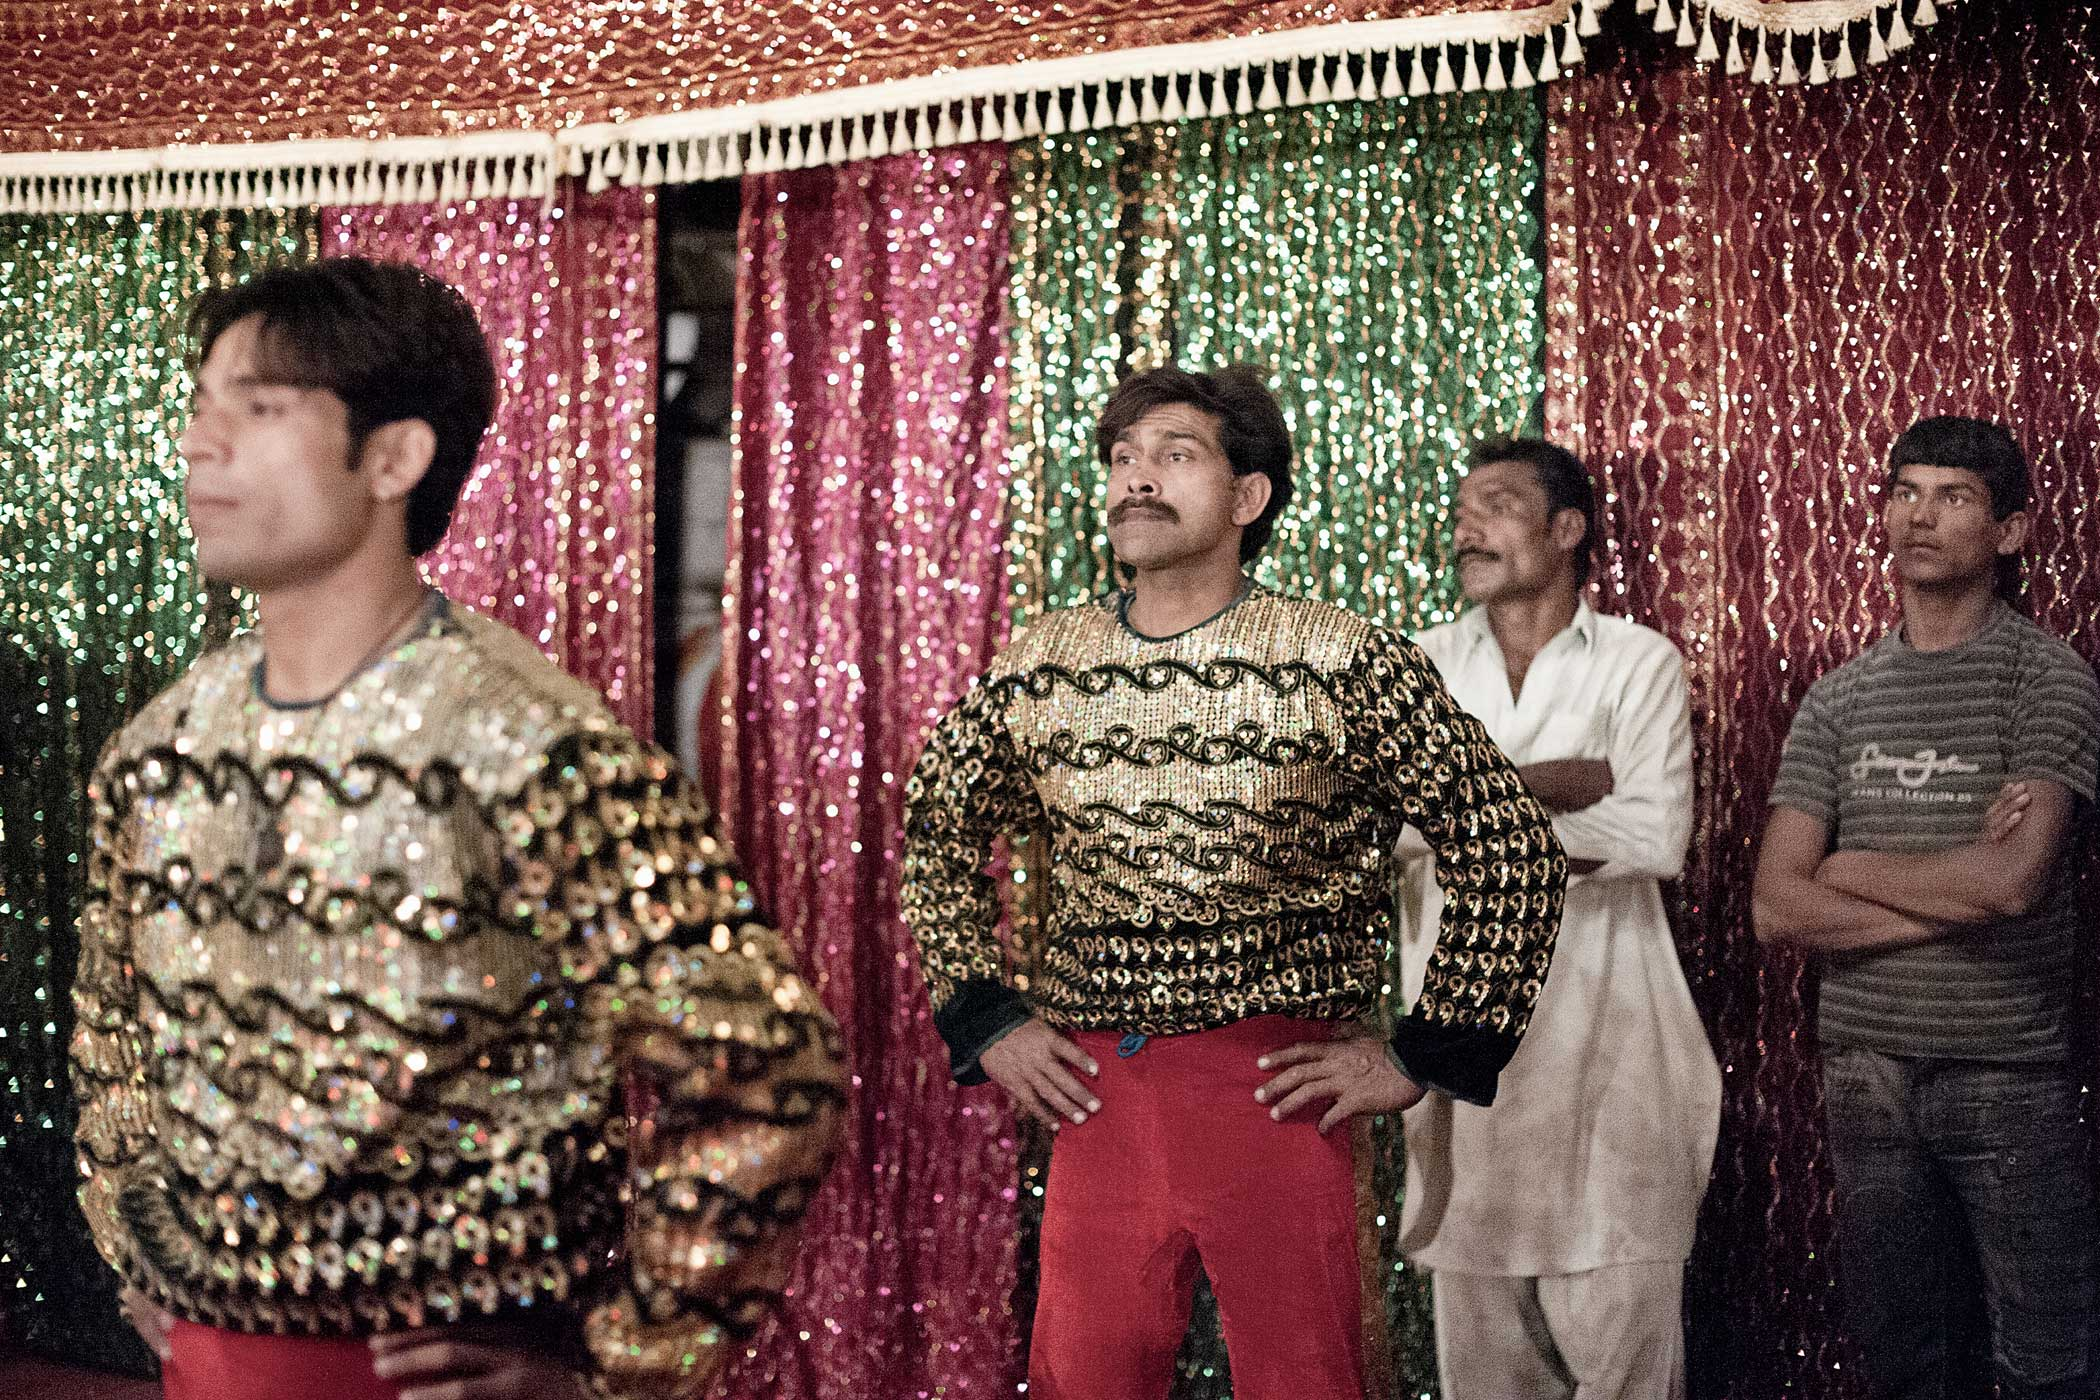 Lucky Irani Circus                               Acrobats wait to enter the ring.